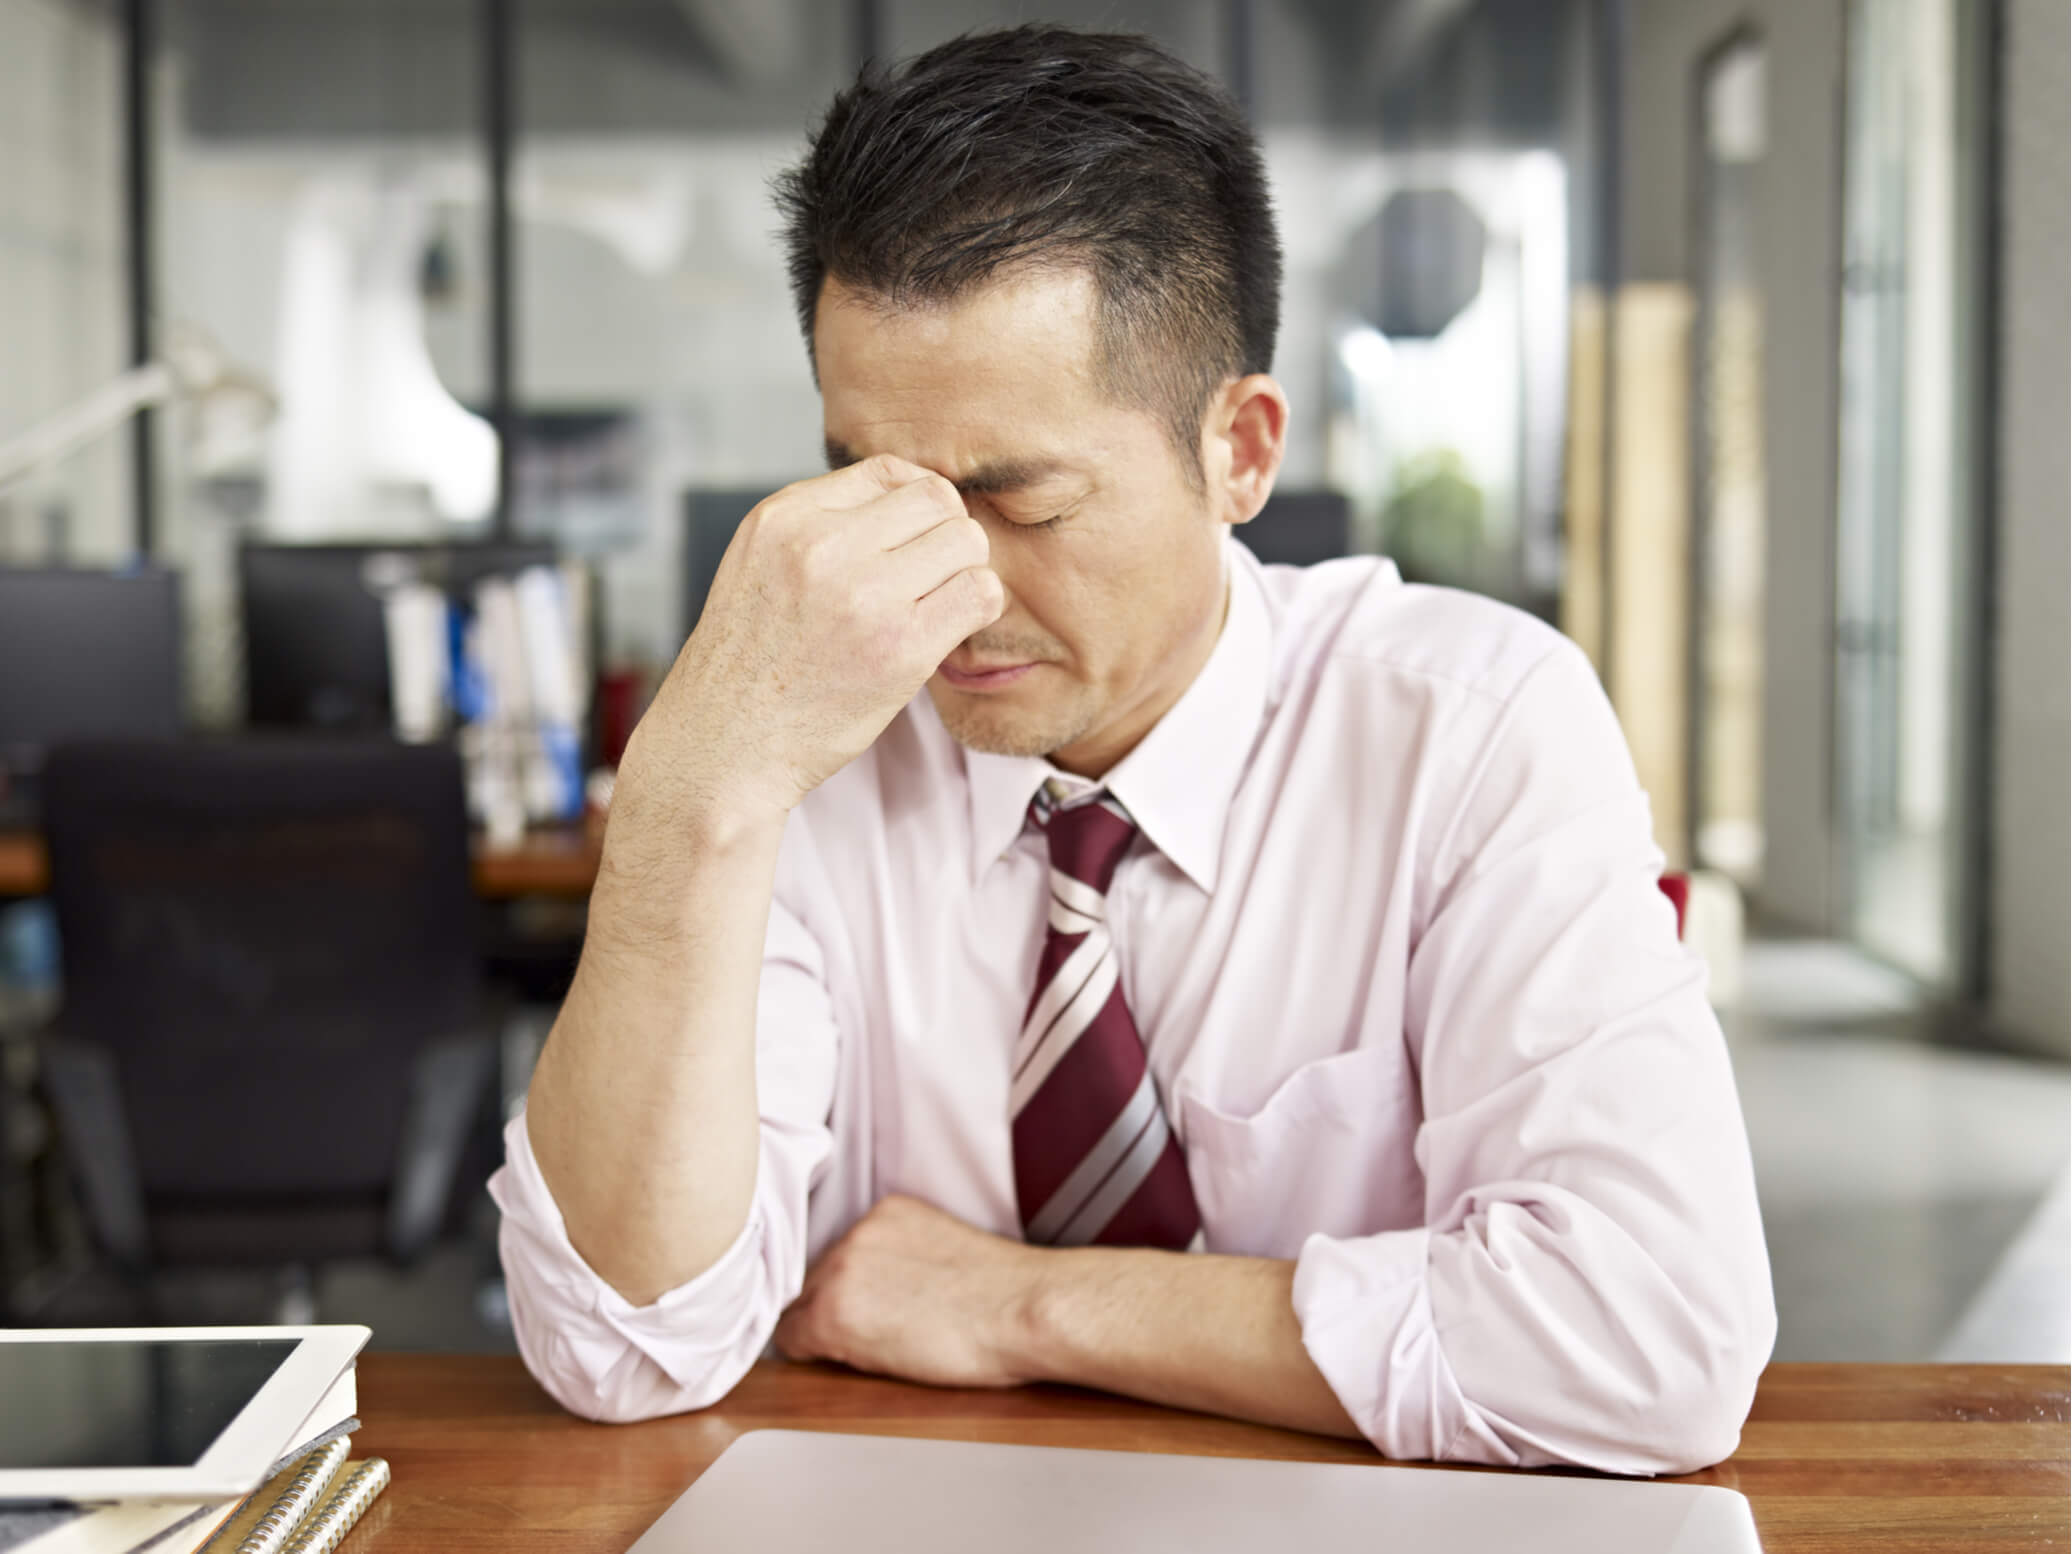 8 ways to deal with difficult employees